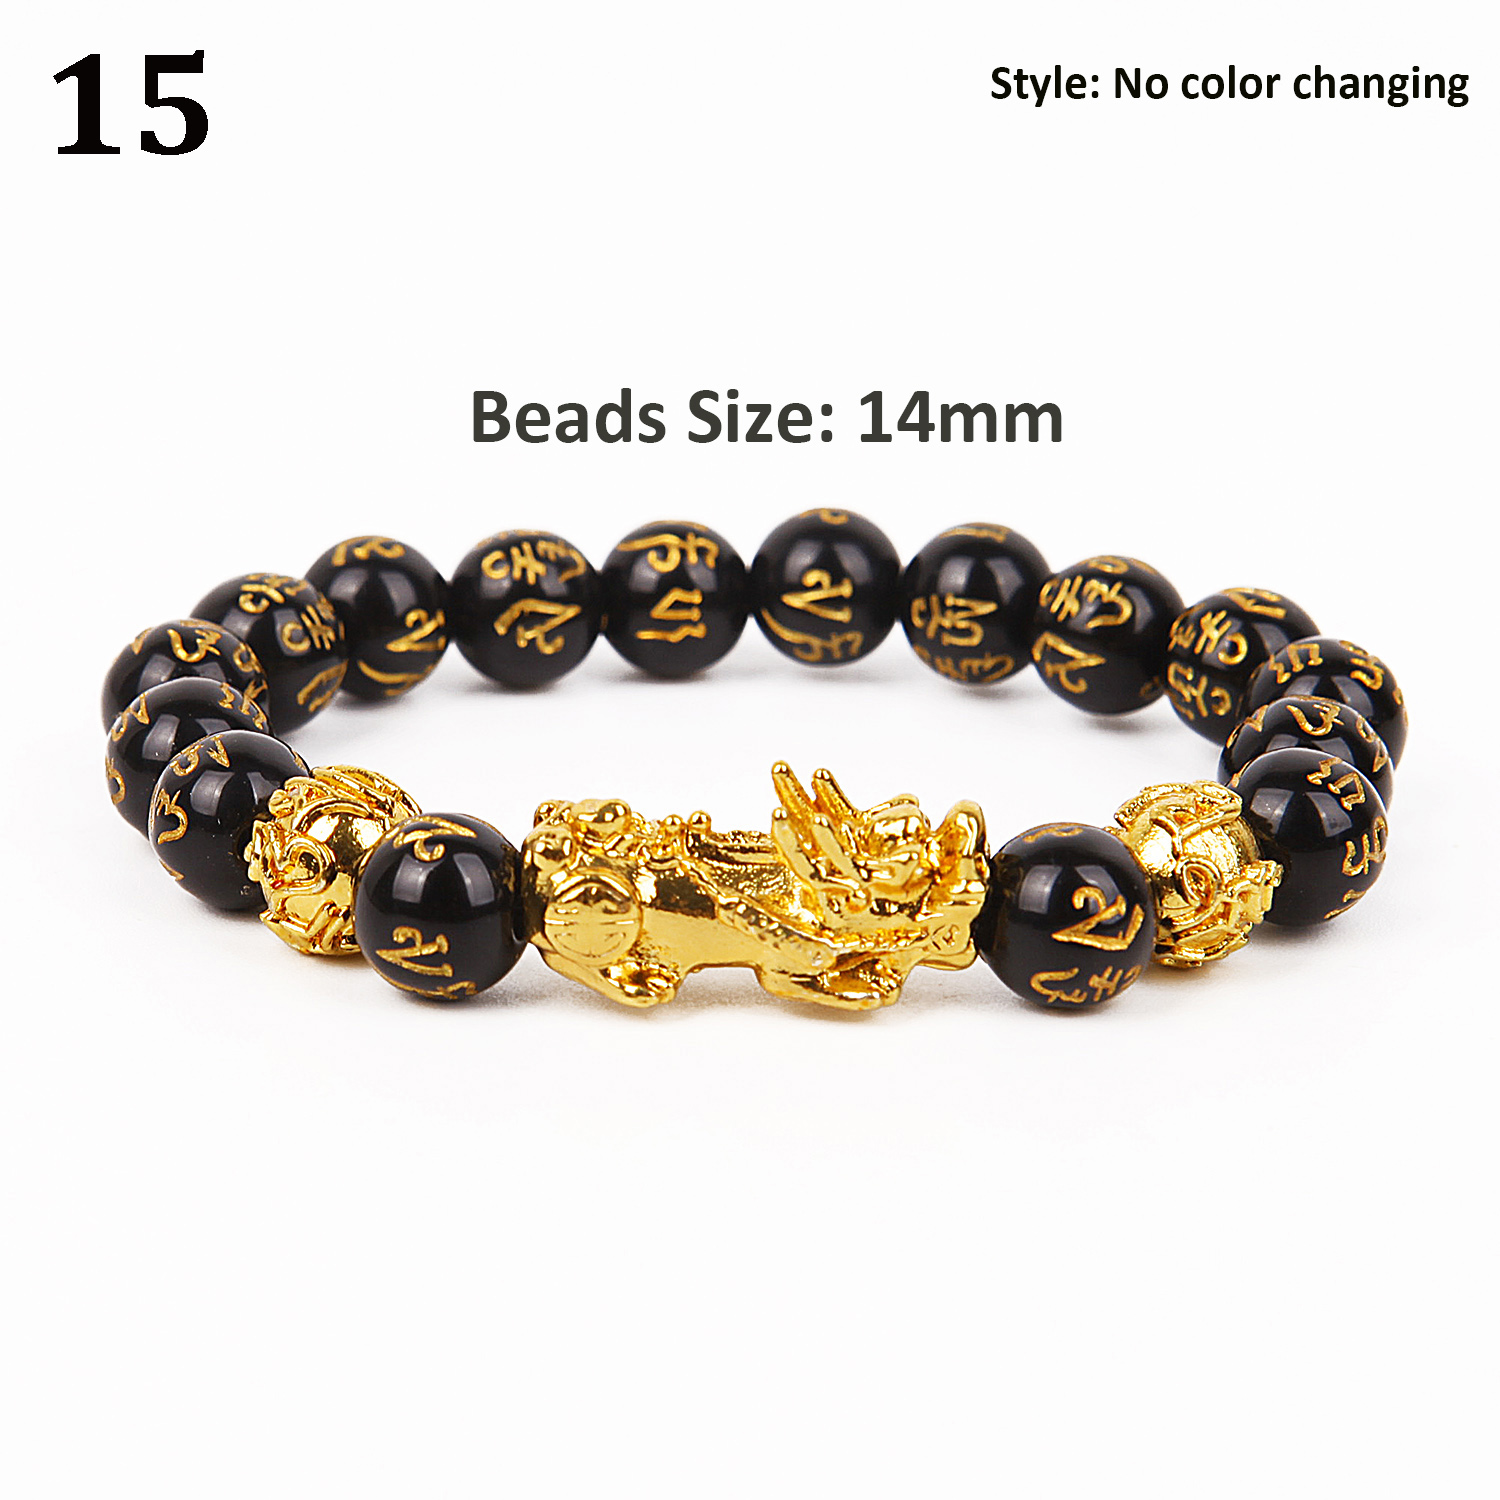 15 (Beads size 14mm)